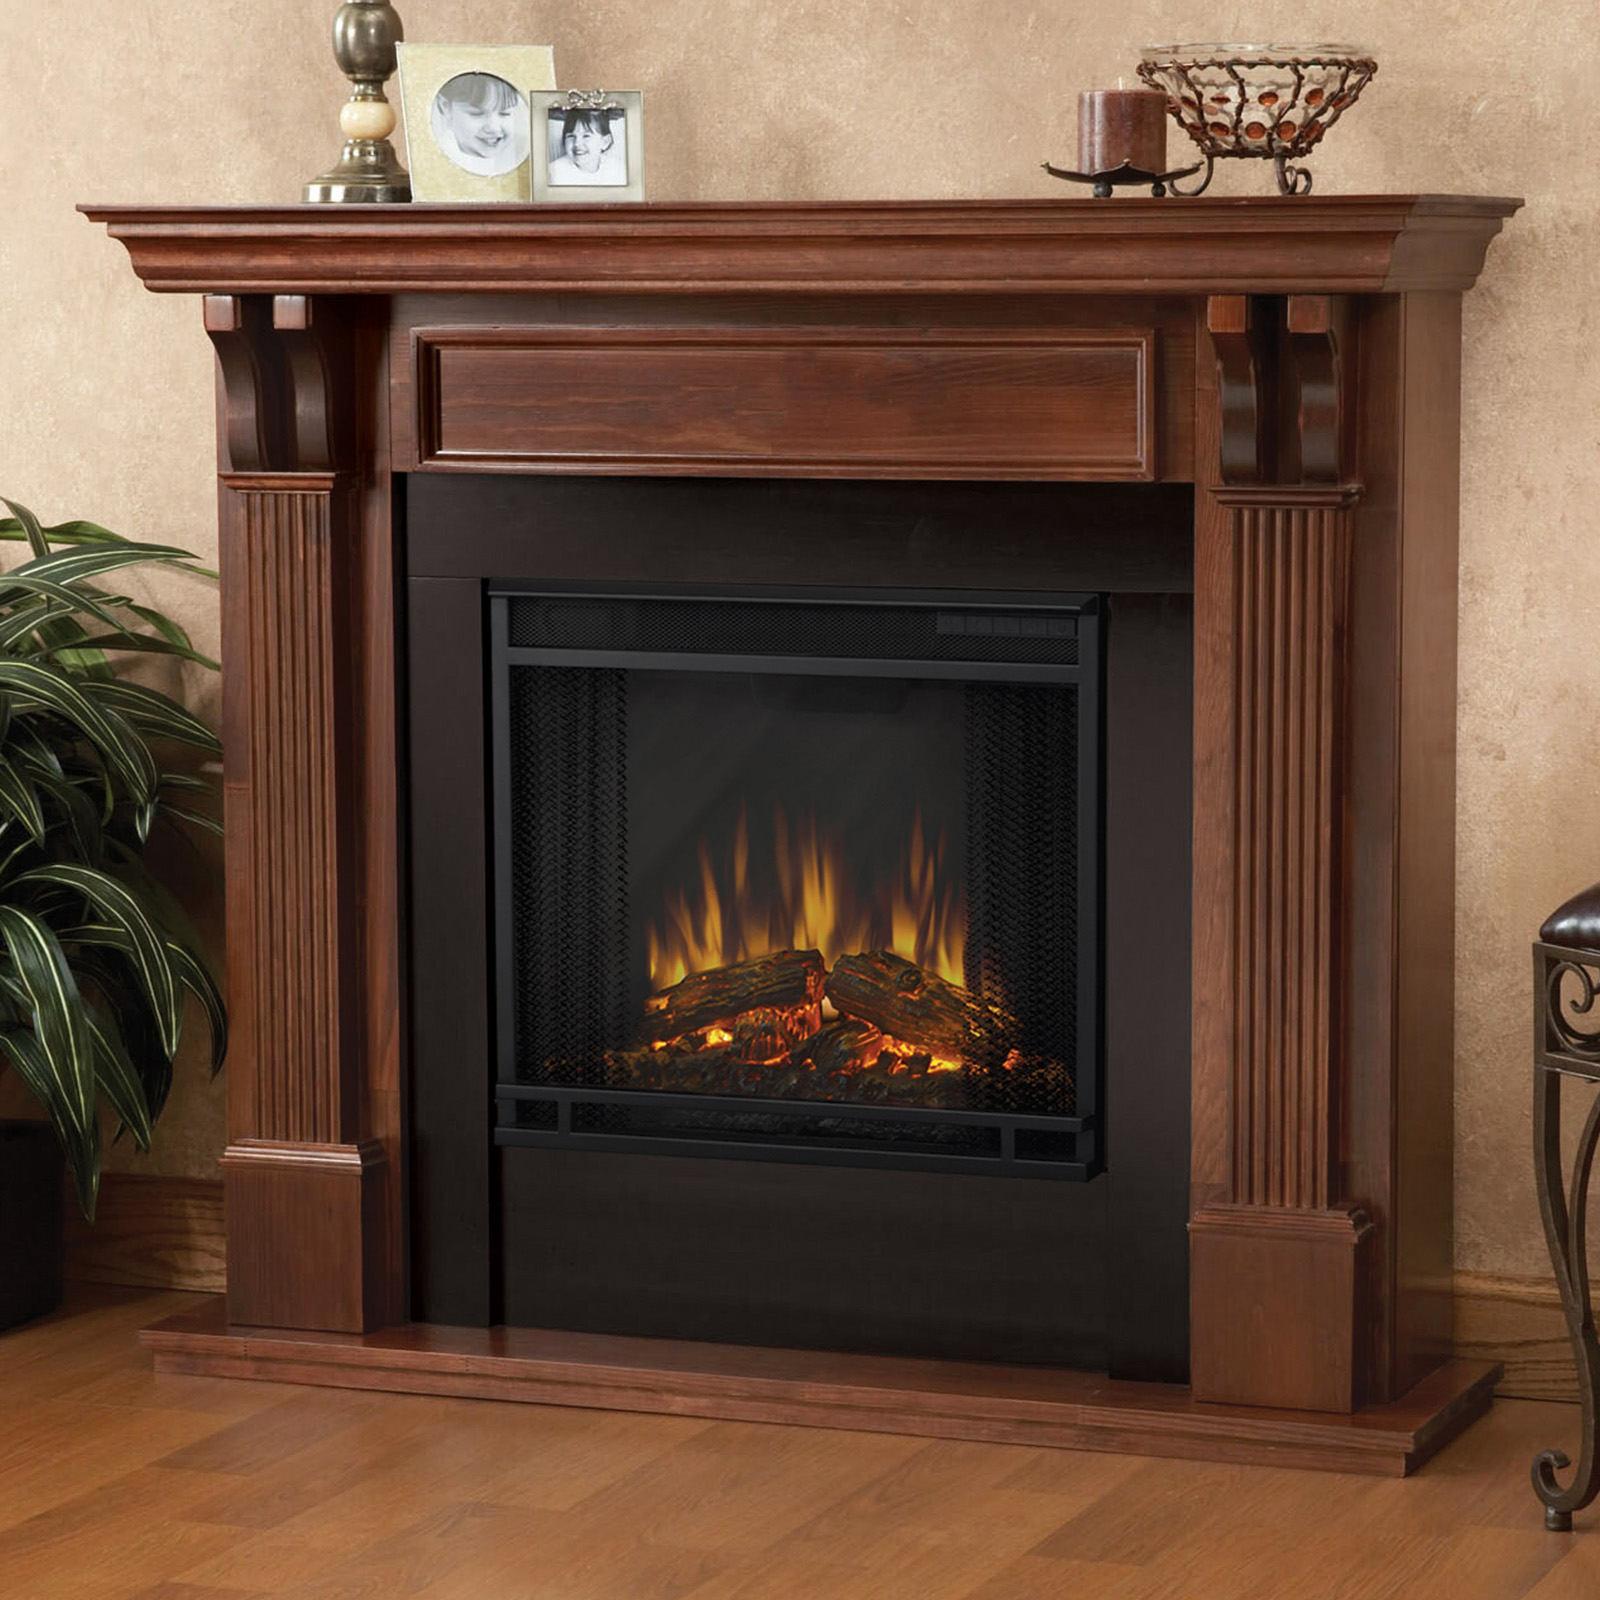 fireplaces black friday deals through 11 29